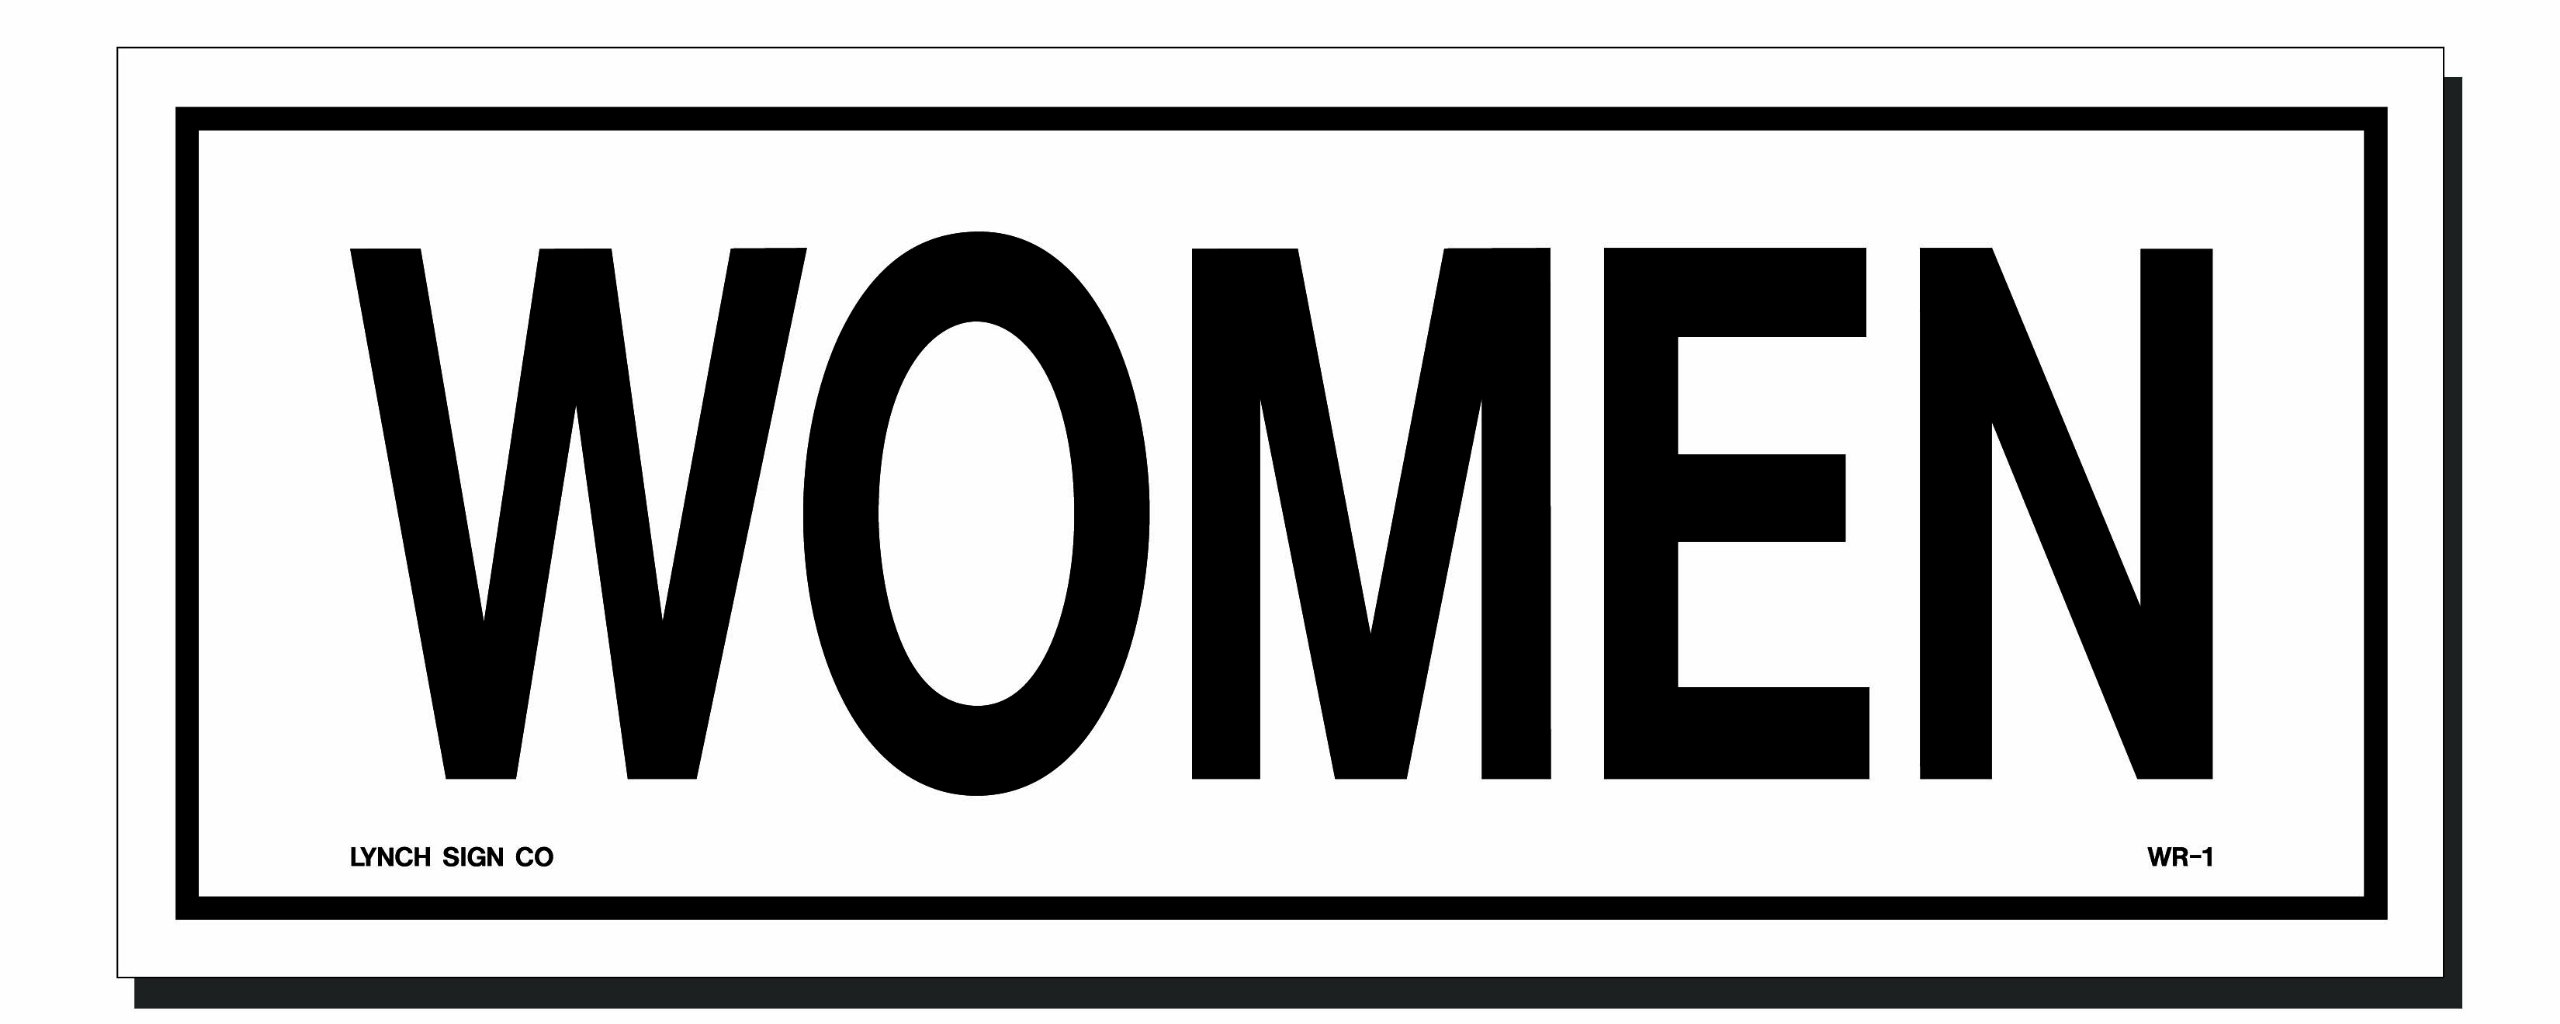 Lynch Signs 10 in. x 4 in. Sign Black on White Plastic Women